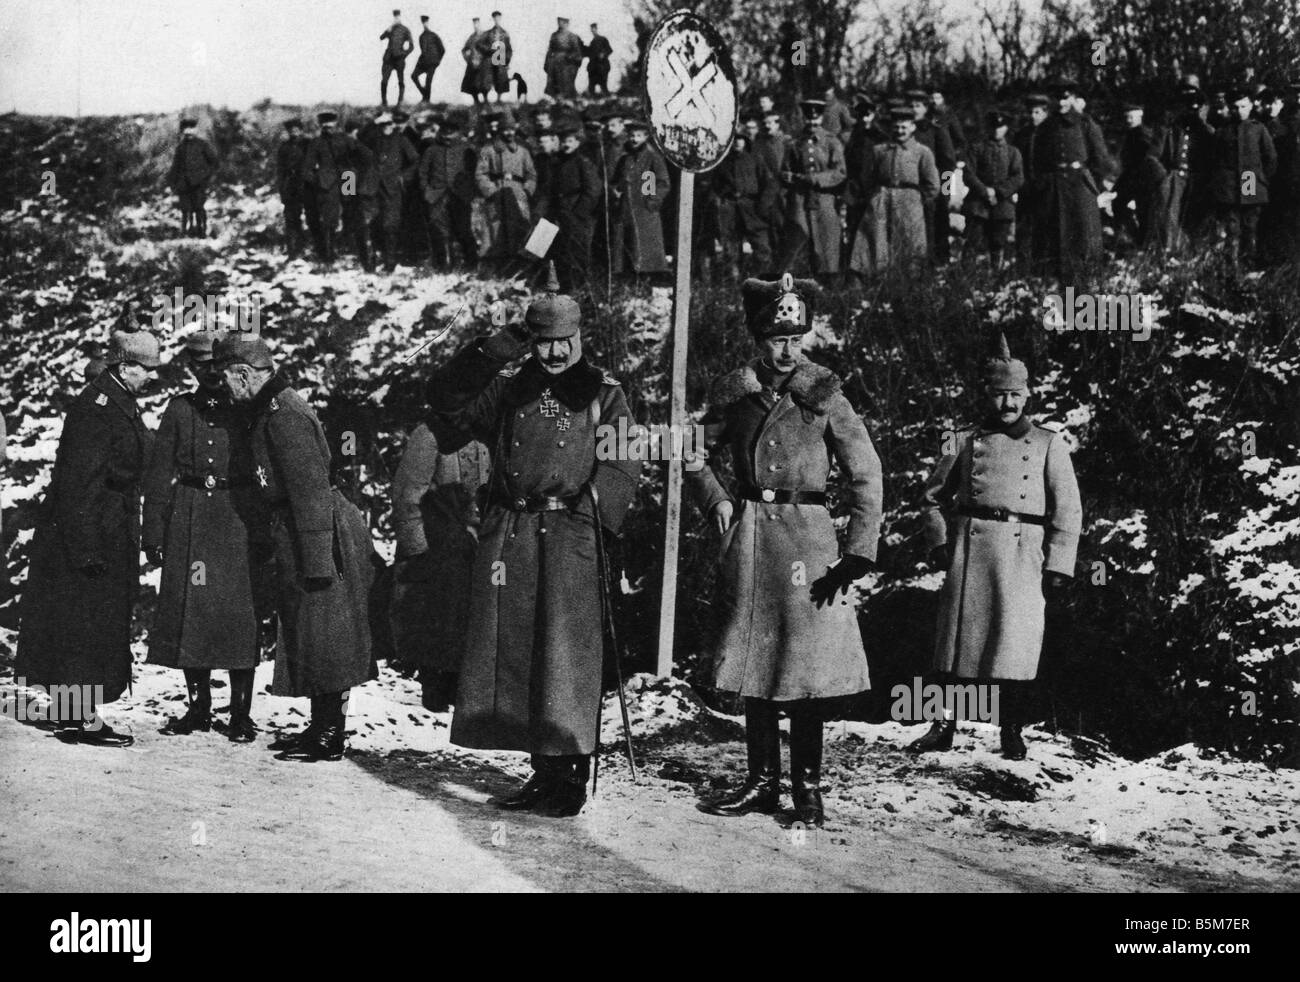 1 W46 F1917 19 E Wilhelm II Crown Prince WWI Wilhelm II German Kaiser 1888 1918 1859 1941 The Kaiser and the Crown - Stock Image